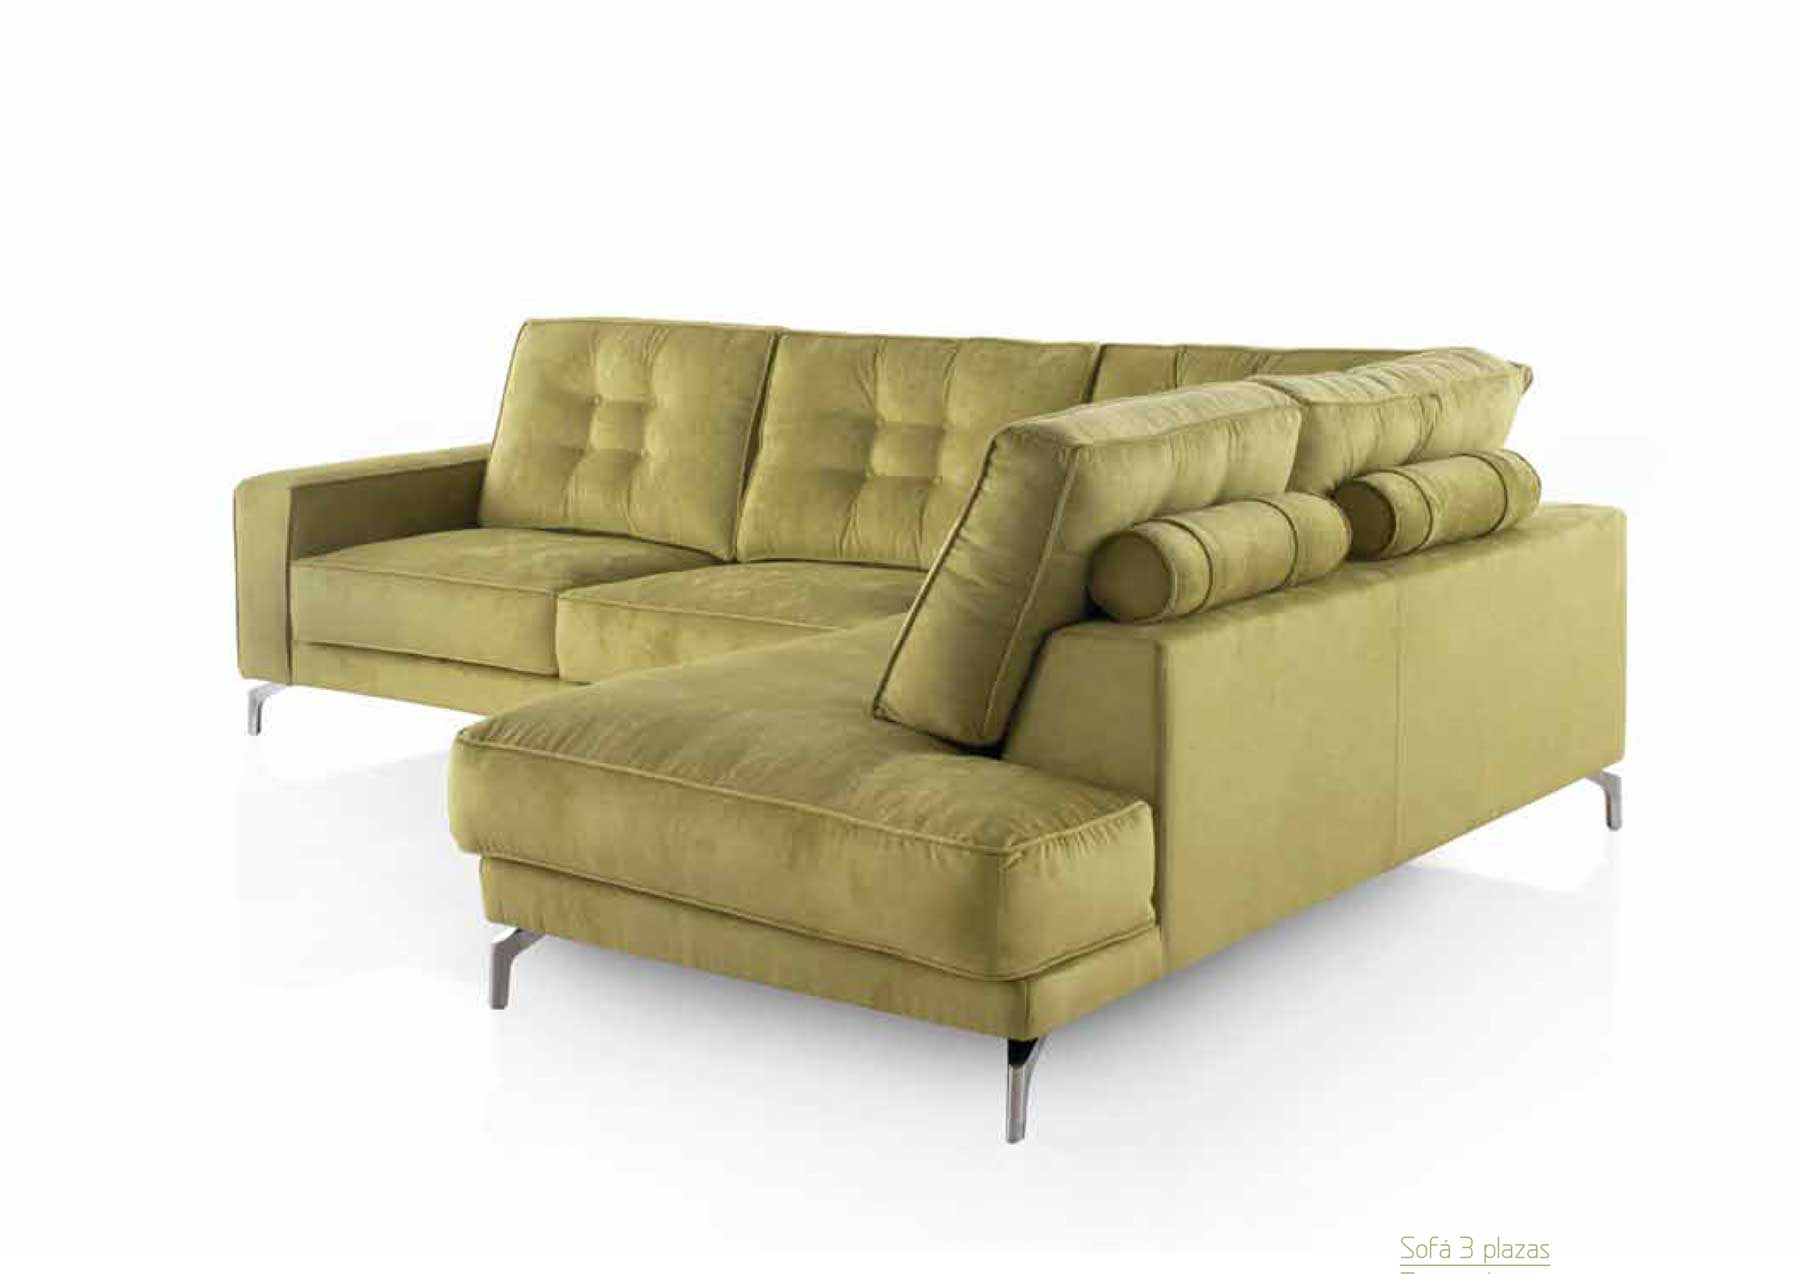 SOFA CHAISELONGUE ADAGIO - R.G